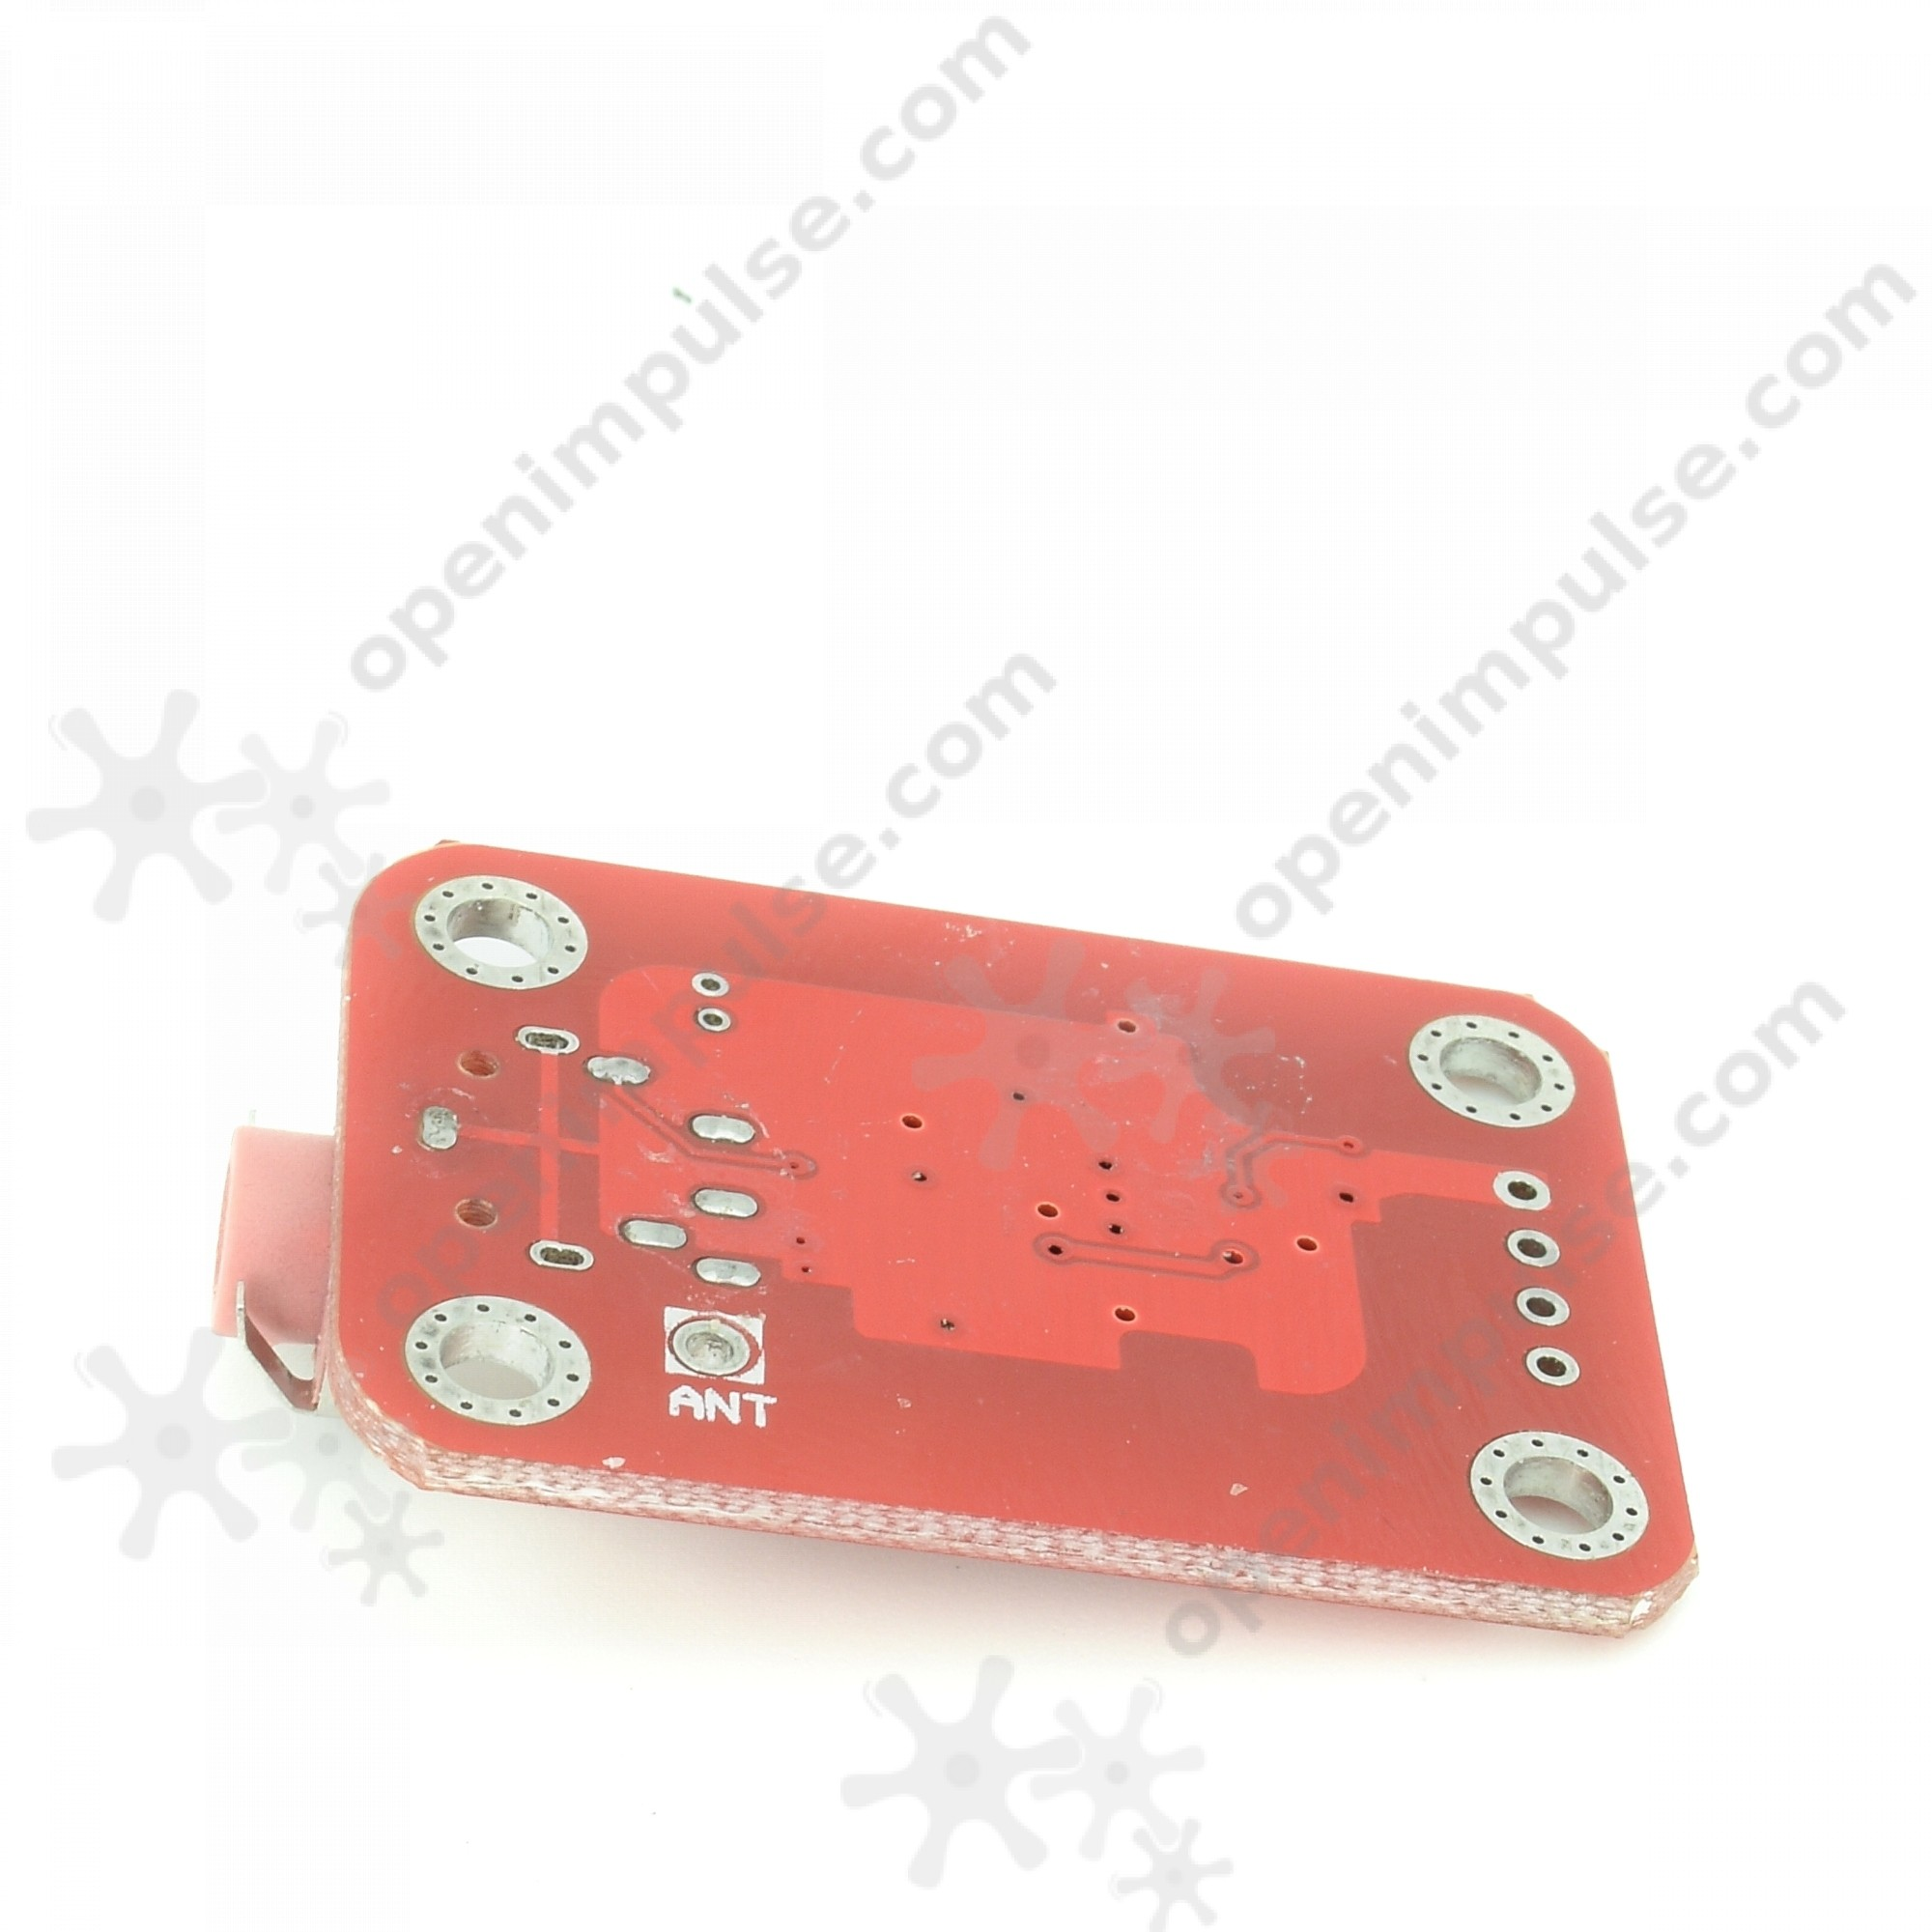 Fm Radio Transmitter Module Open Impulseopen Impulse Circuit 6 Electronic Breadboard Layout 4